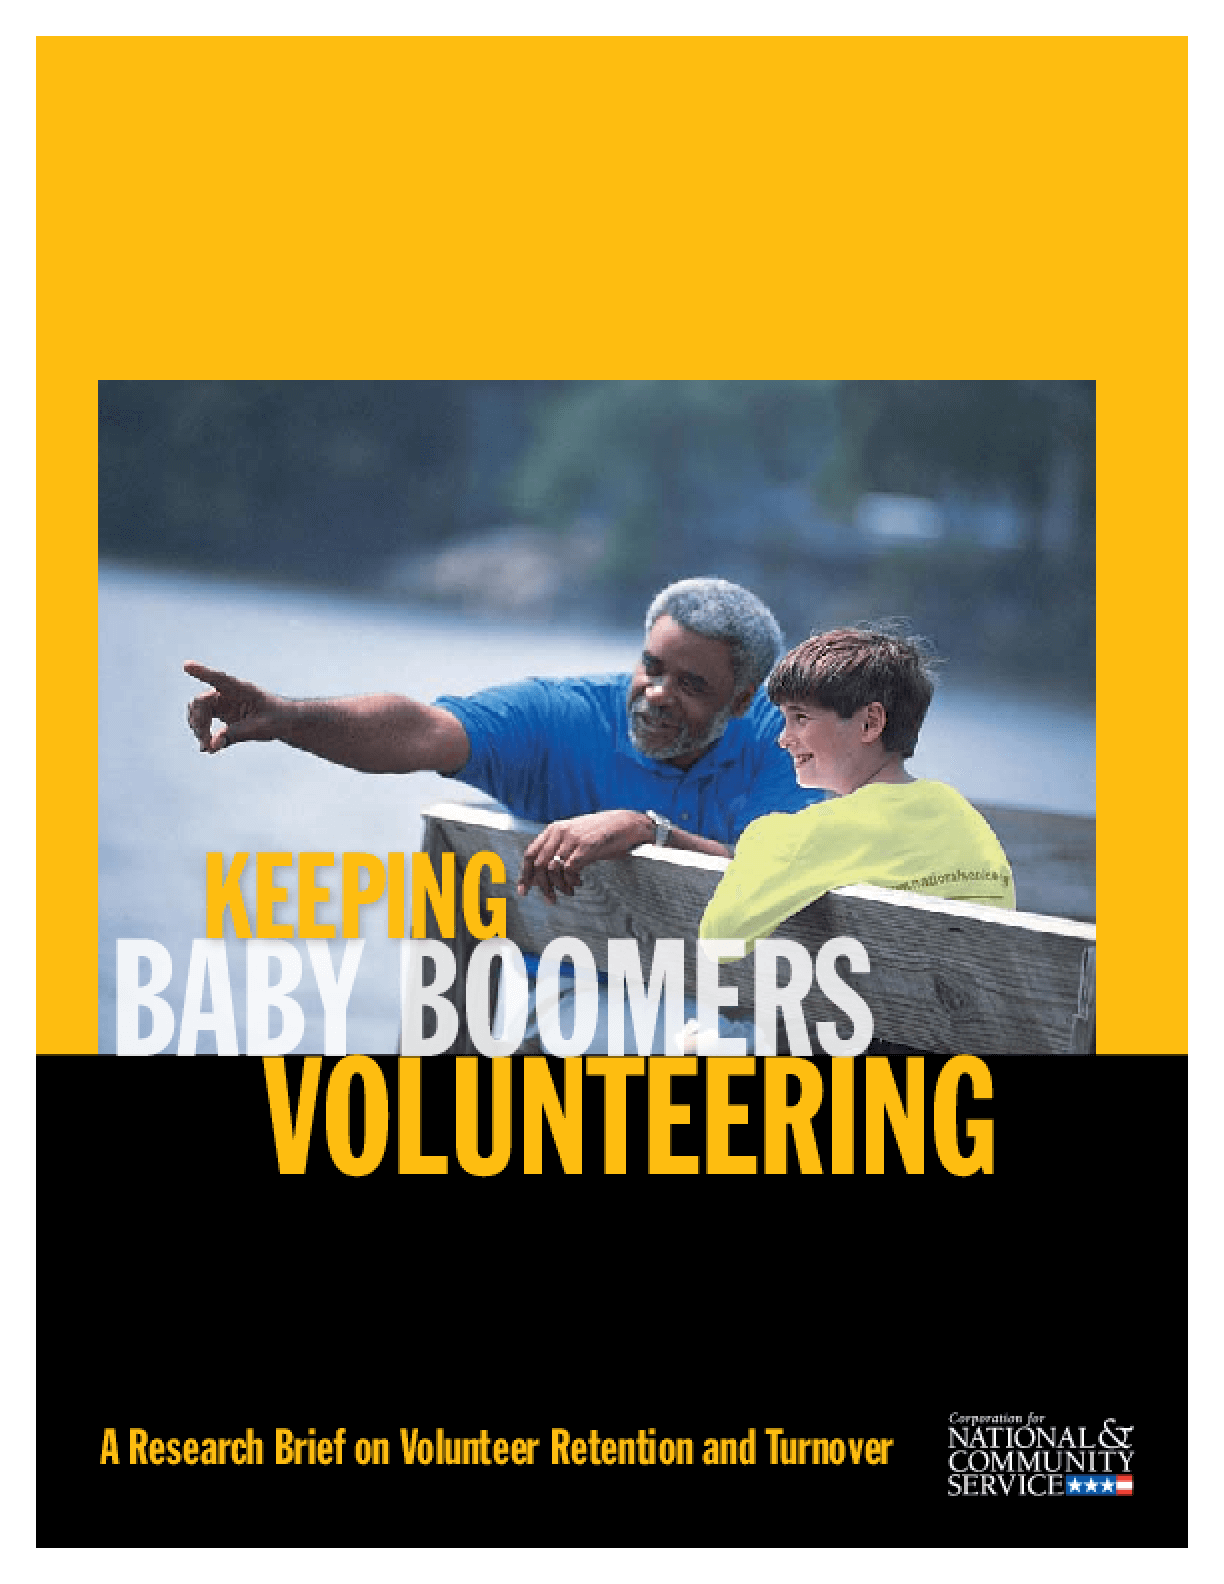 Keeping Baby Boomers Volunteering: A Research Brief on Volunteer Retention and Turnover